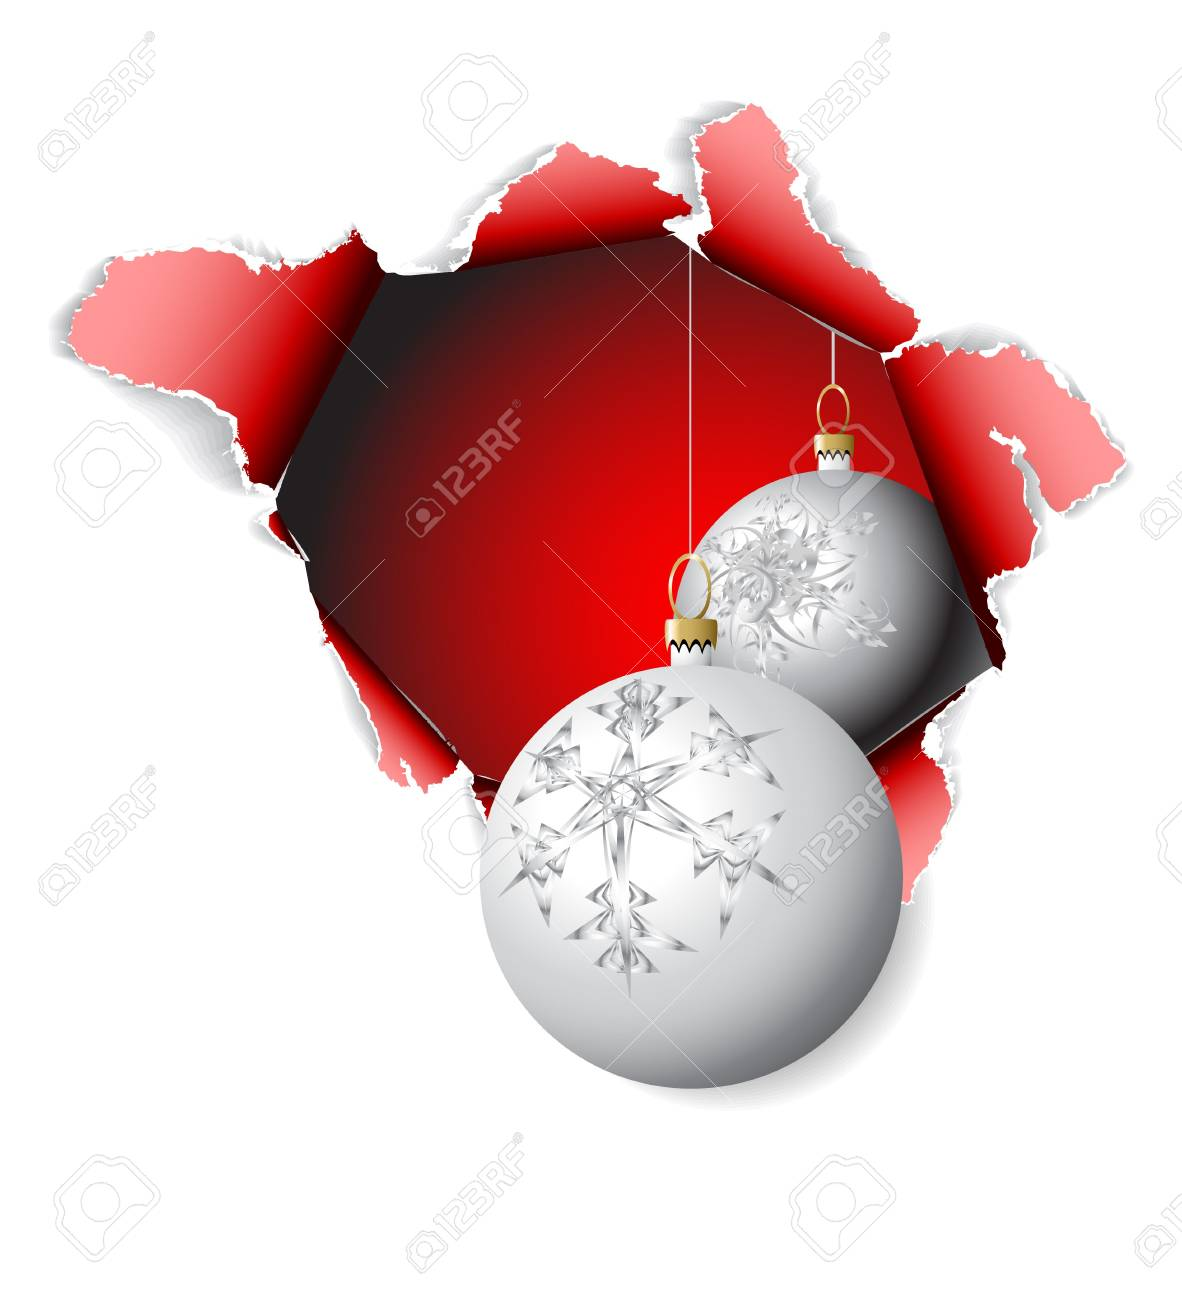 Hole into Christmas time - design for the christmas card Stock Photo - 5740592